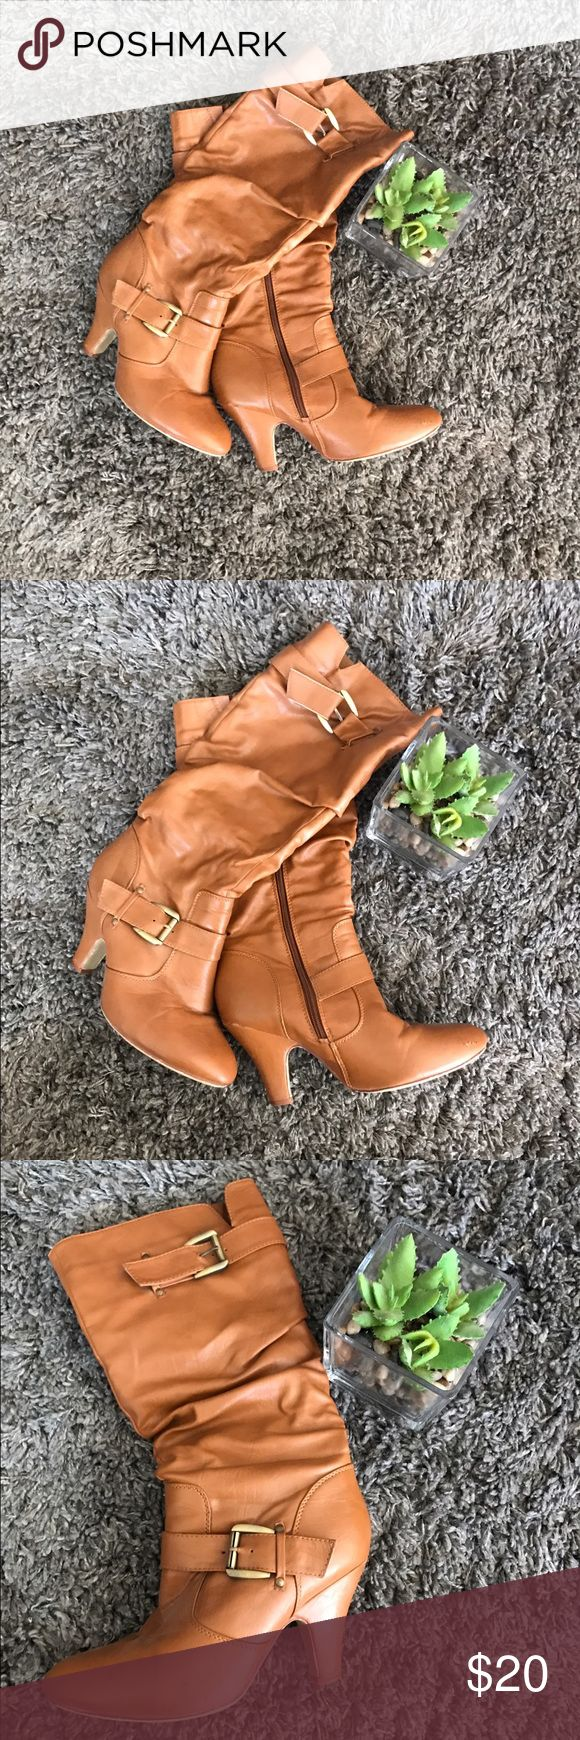 Gorgeous tan high heeled boots- size 8 Gorgeous tan high heeled boots- size 8 Shoes Heeled Boots